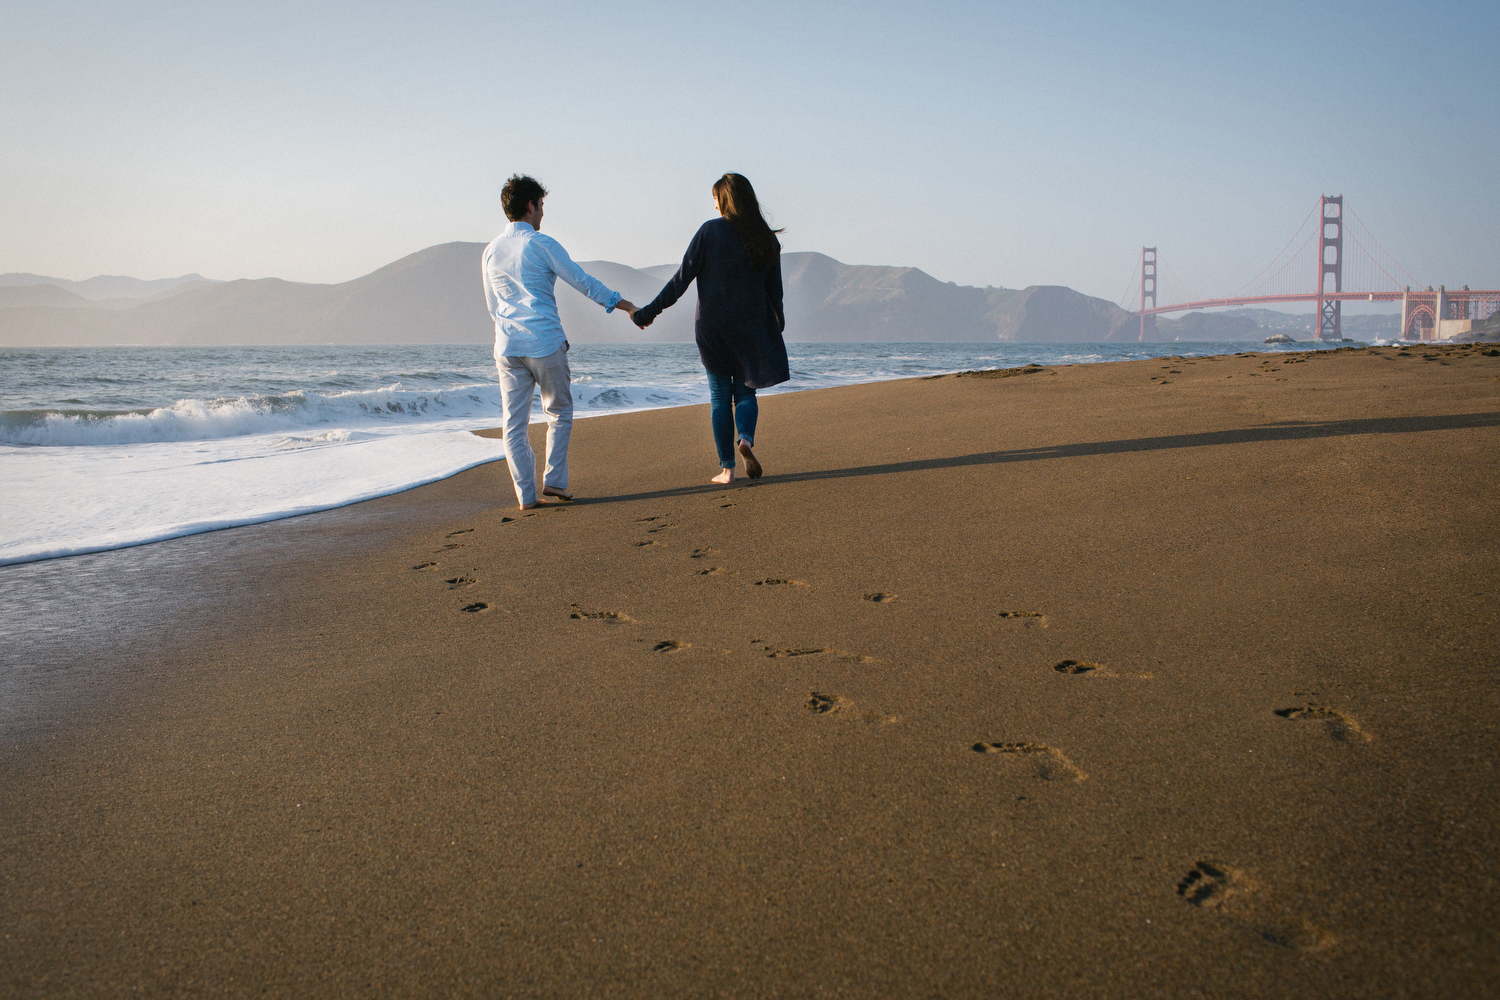 Footsteps in the sand during Baker Beach engagement photos with Neta and Pasha.